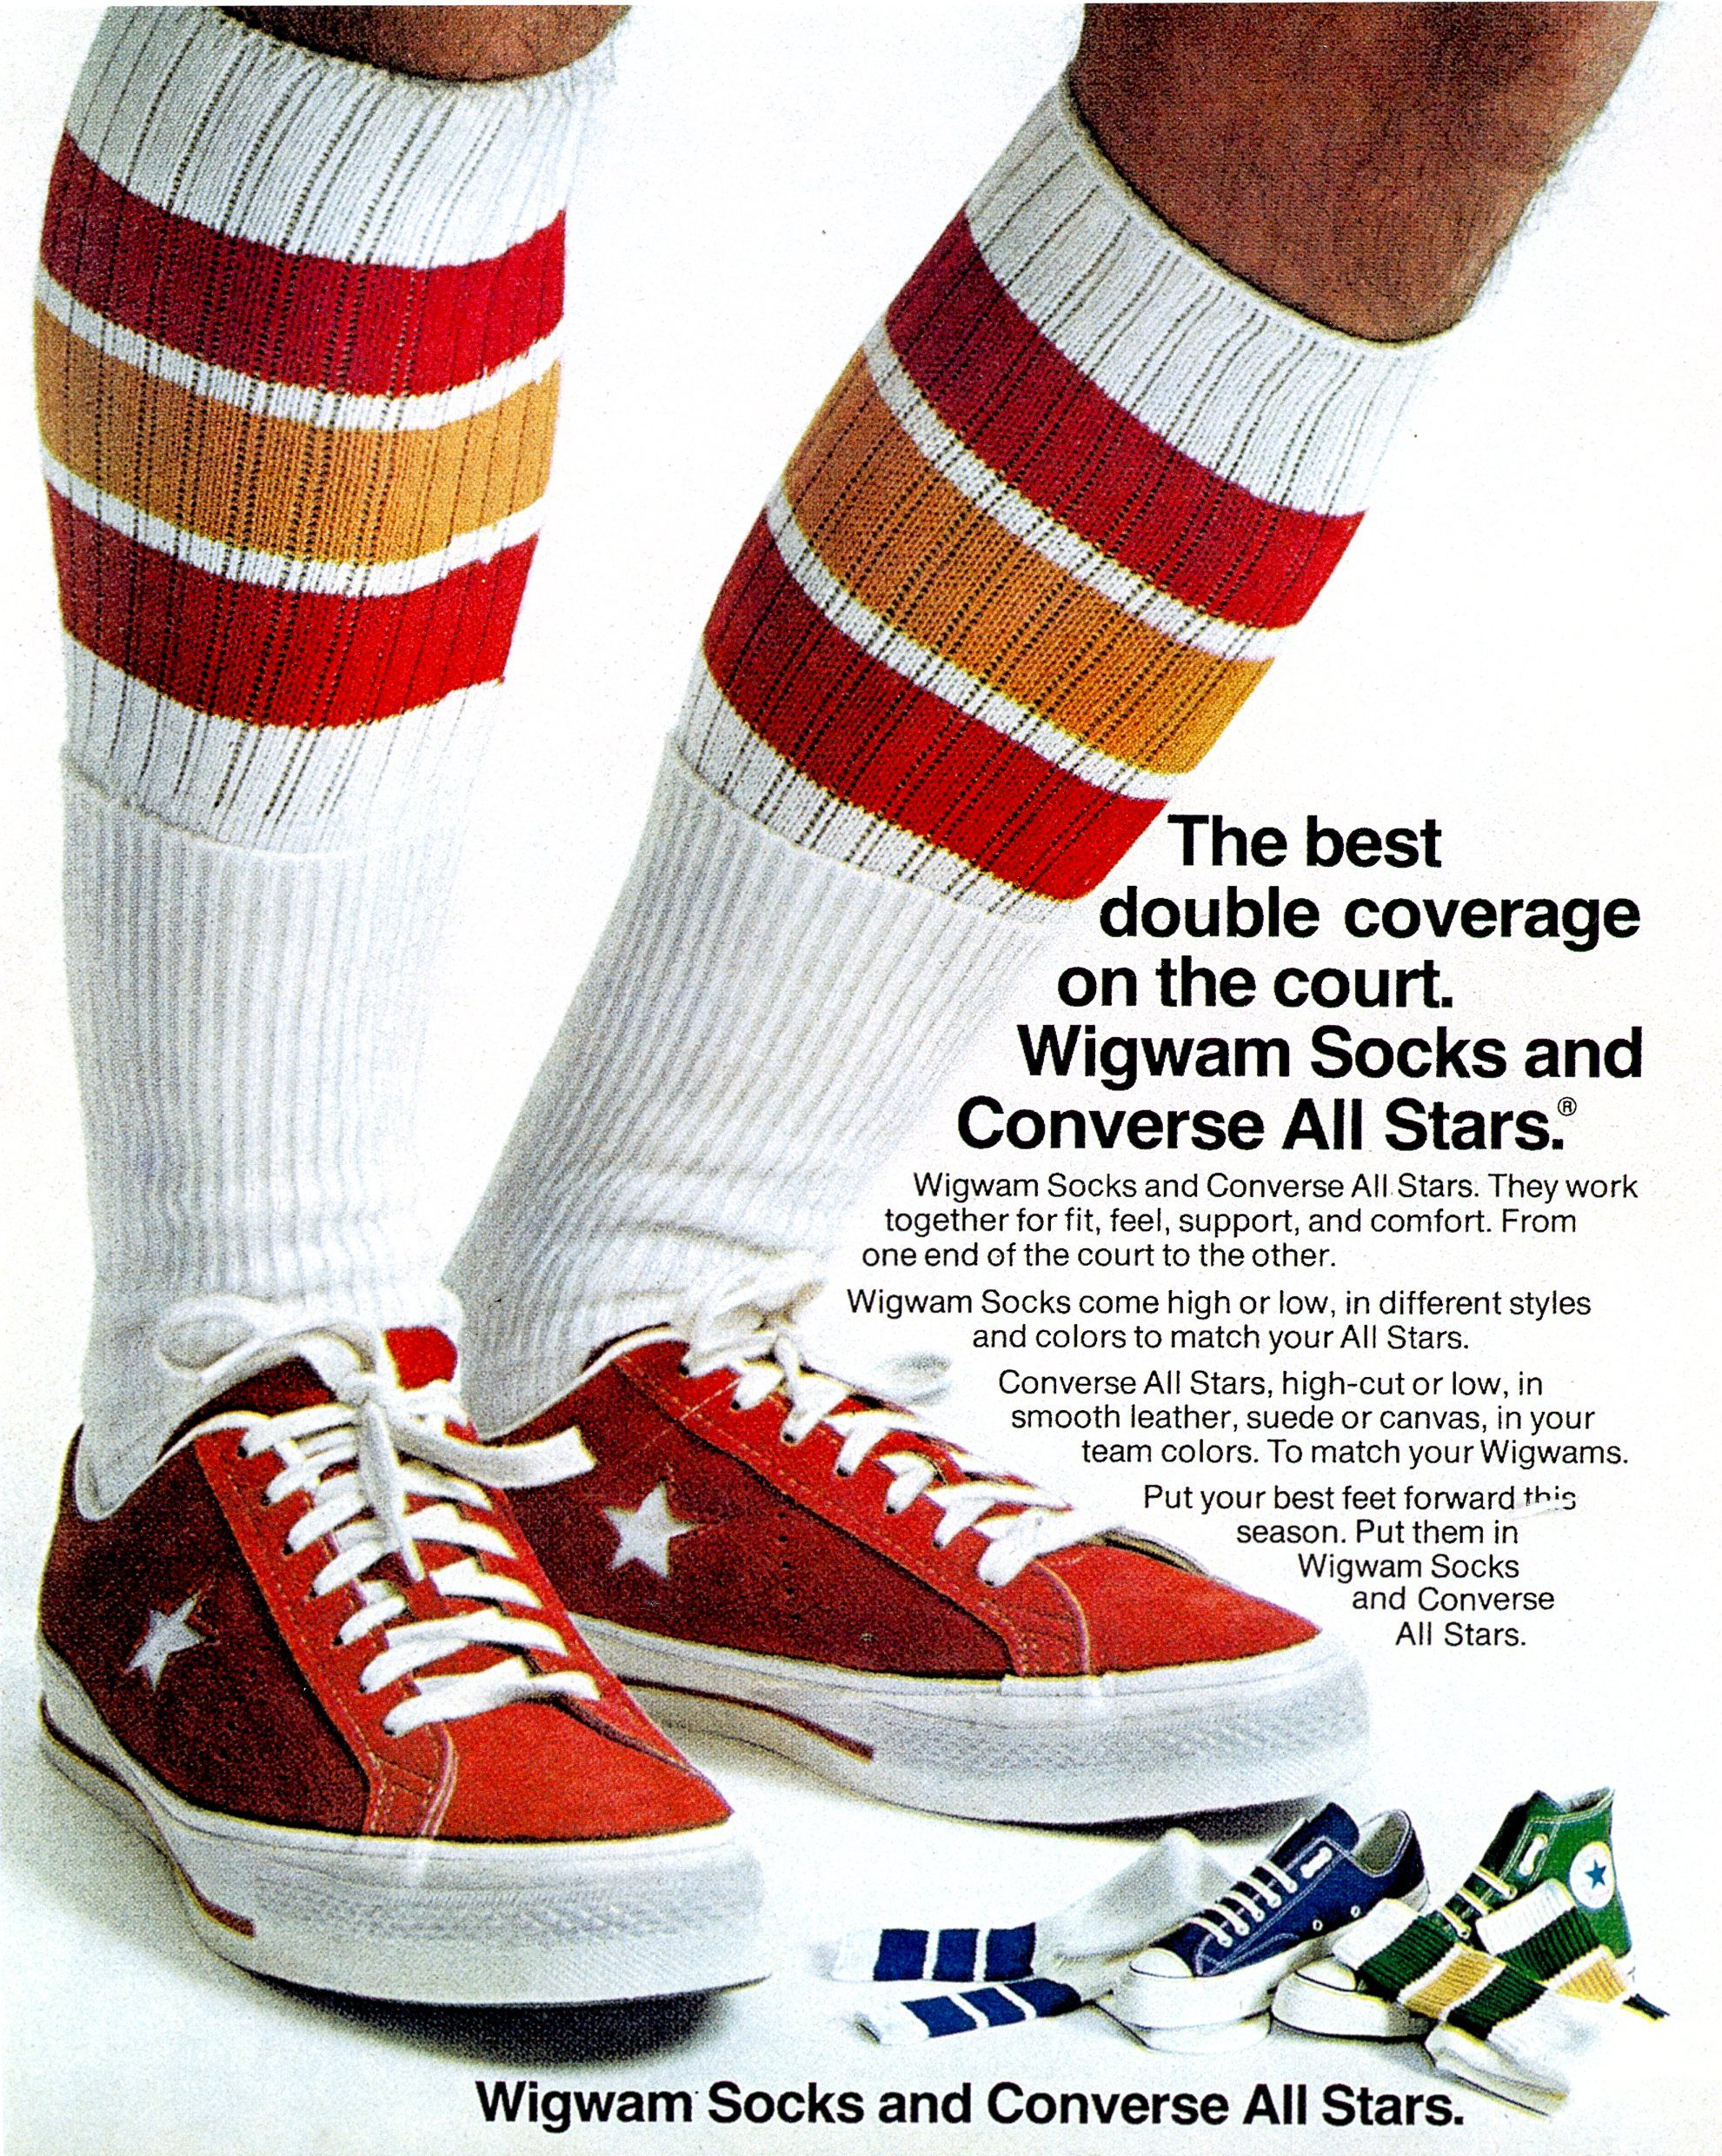 5c6adfc6 1974 Converse Ad | Vintage Fashion Ads | Converse, Vintage shoes ...